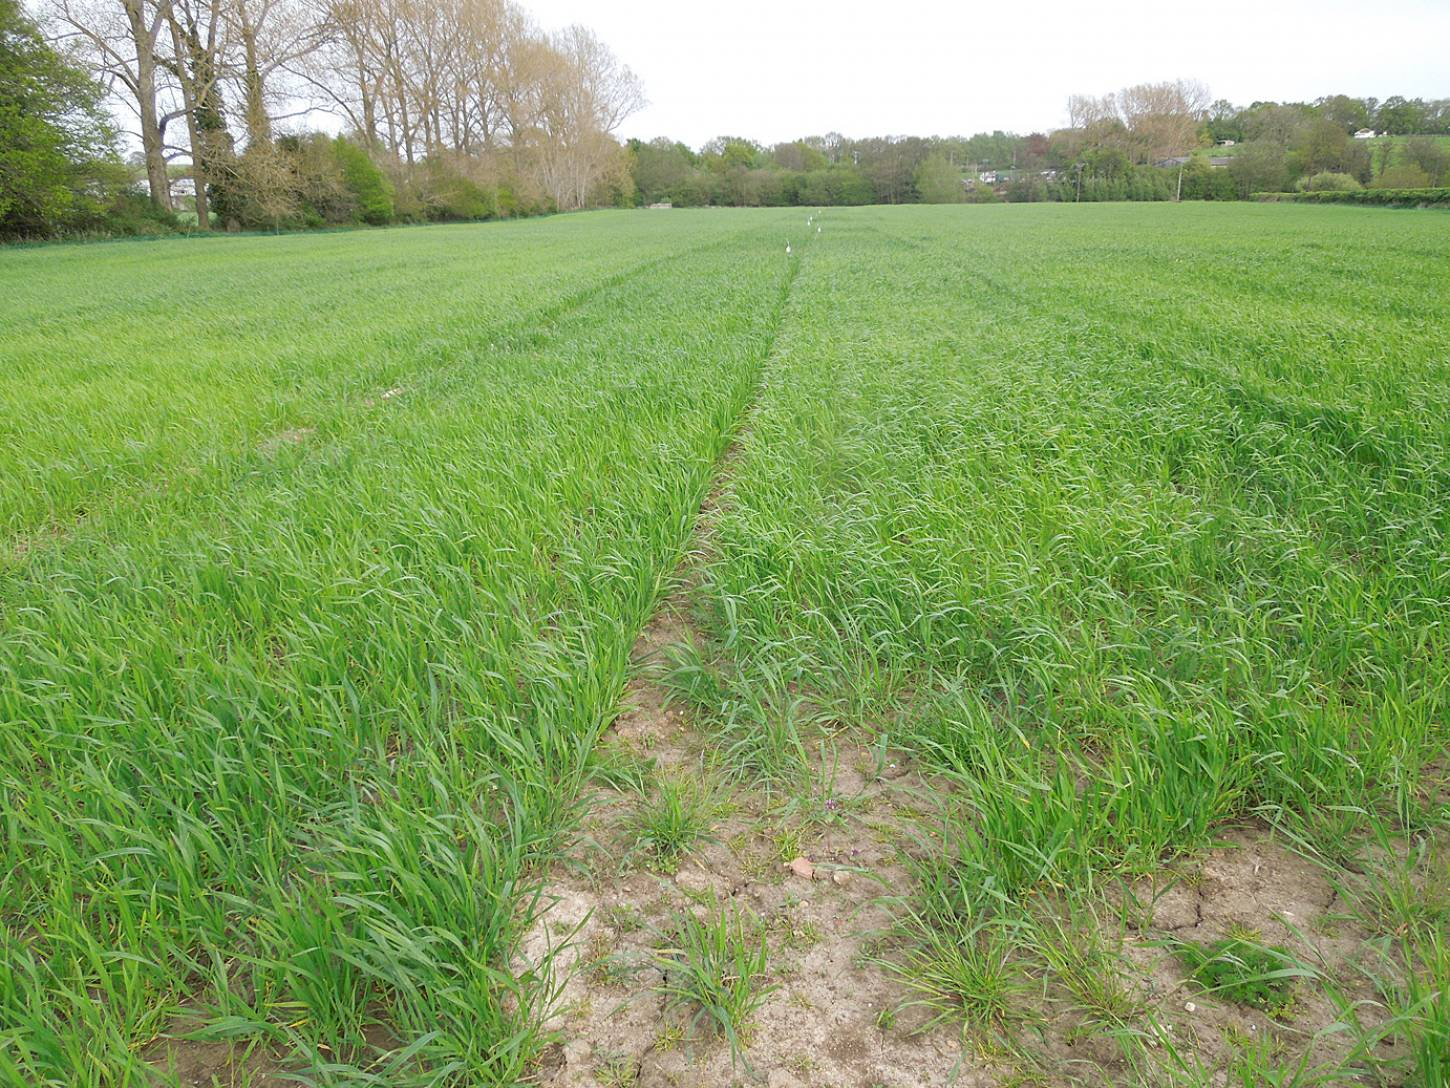 WoWo named heritage line plot in 'Chicken' field - 6:18pm&nbsp;7<sup>th</sup>&nbsp;May.&nbsp;'15